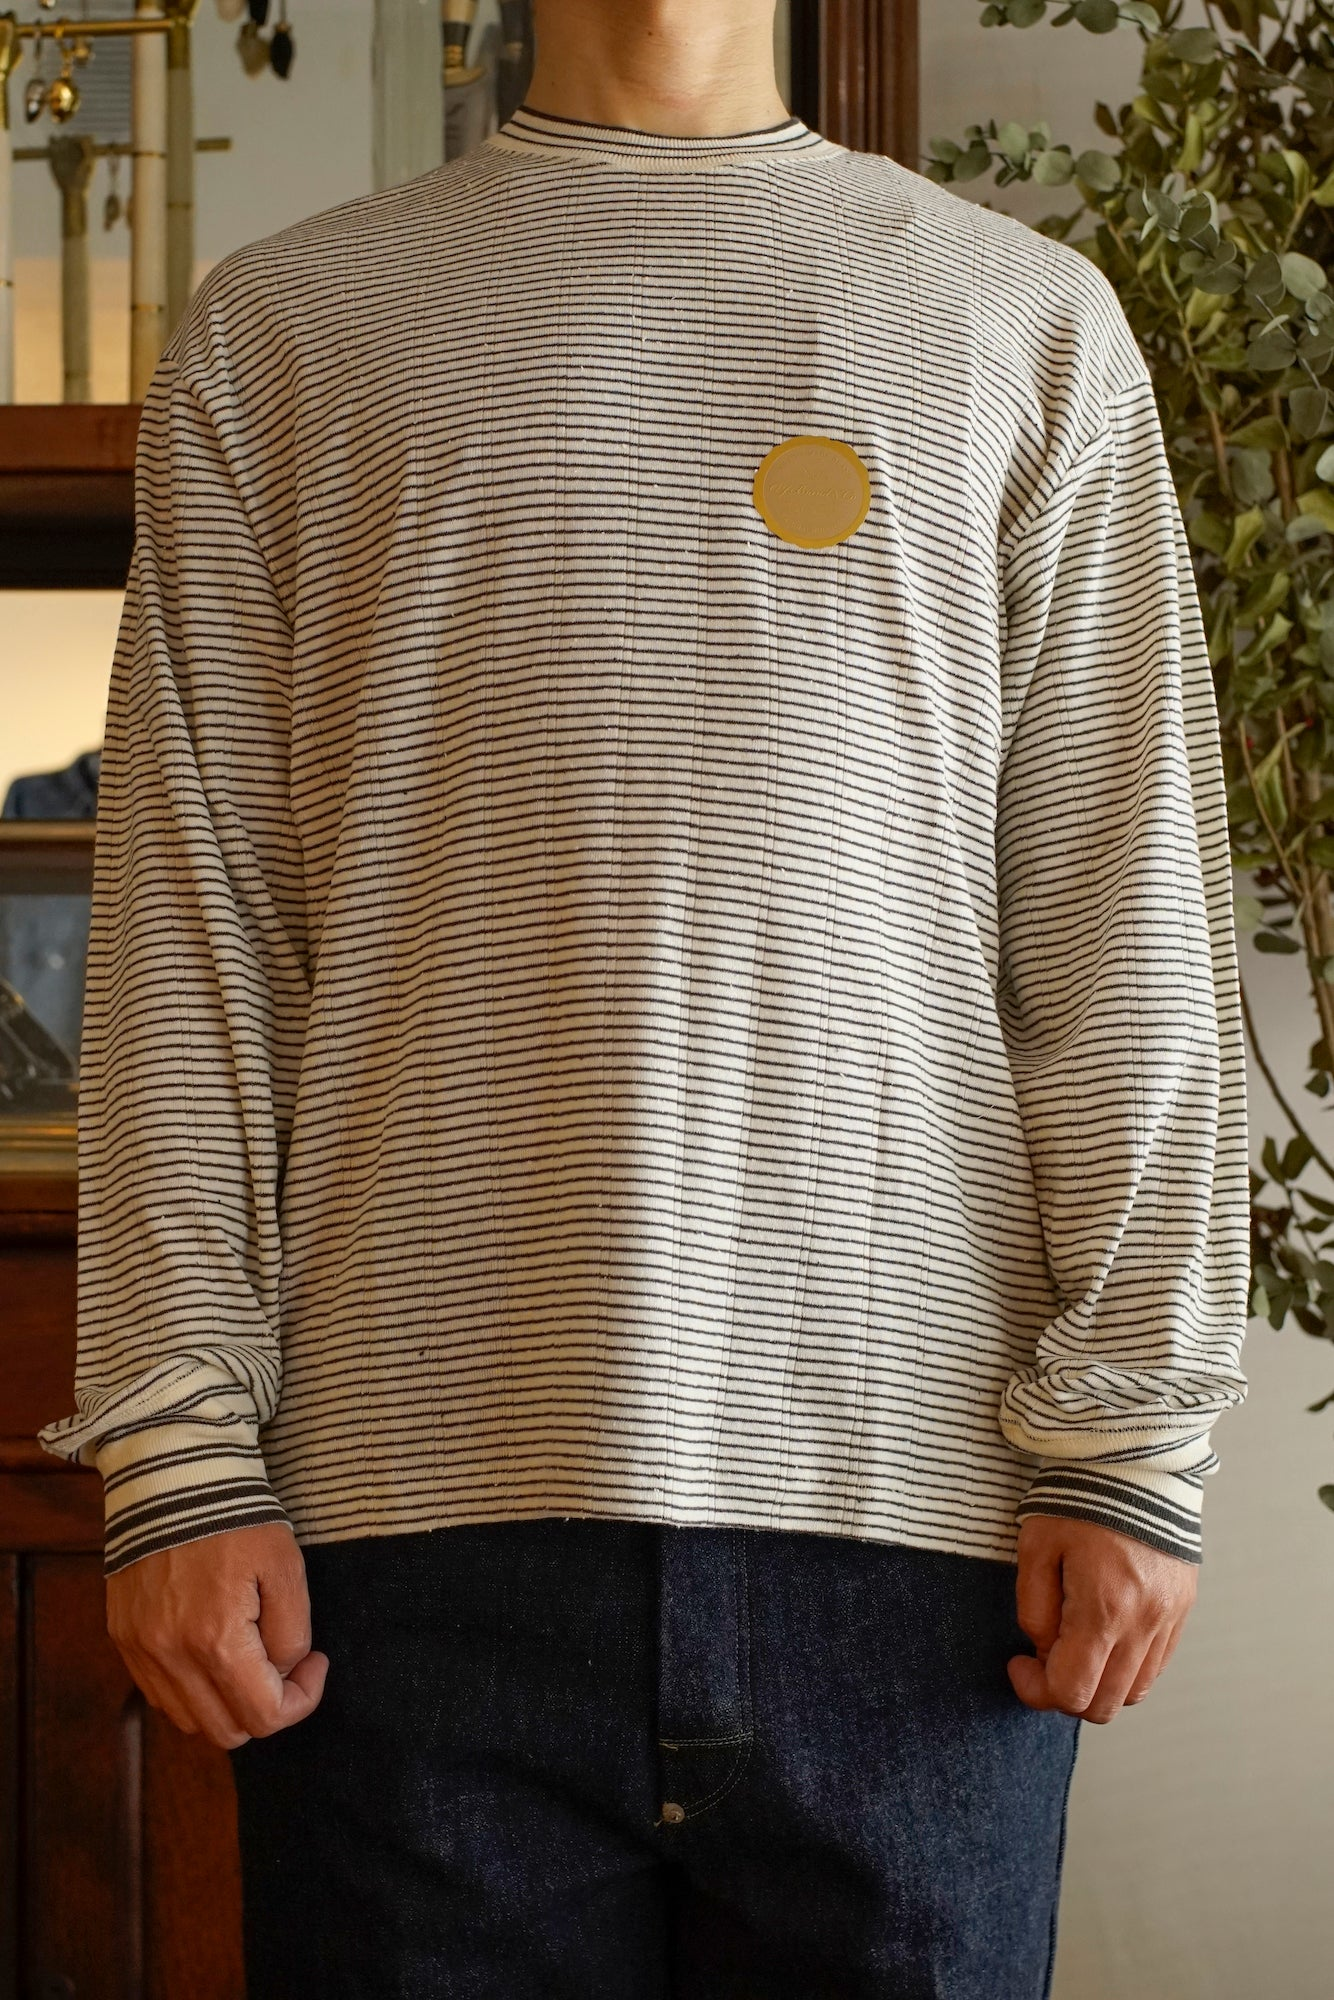 RIBBED CREW NECK SHIRTS - 201OJ-CT01